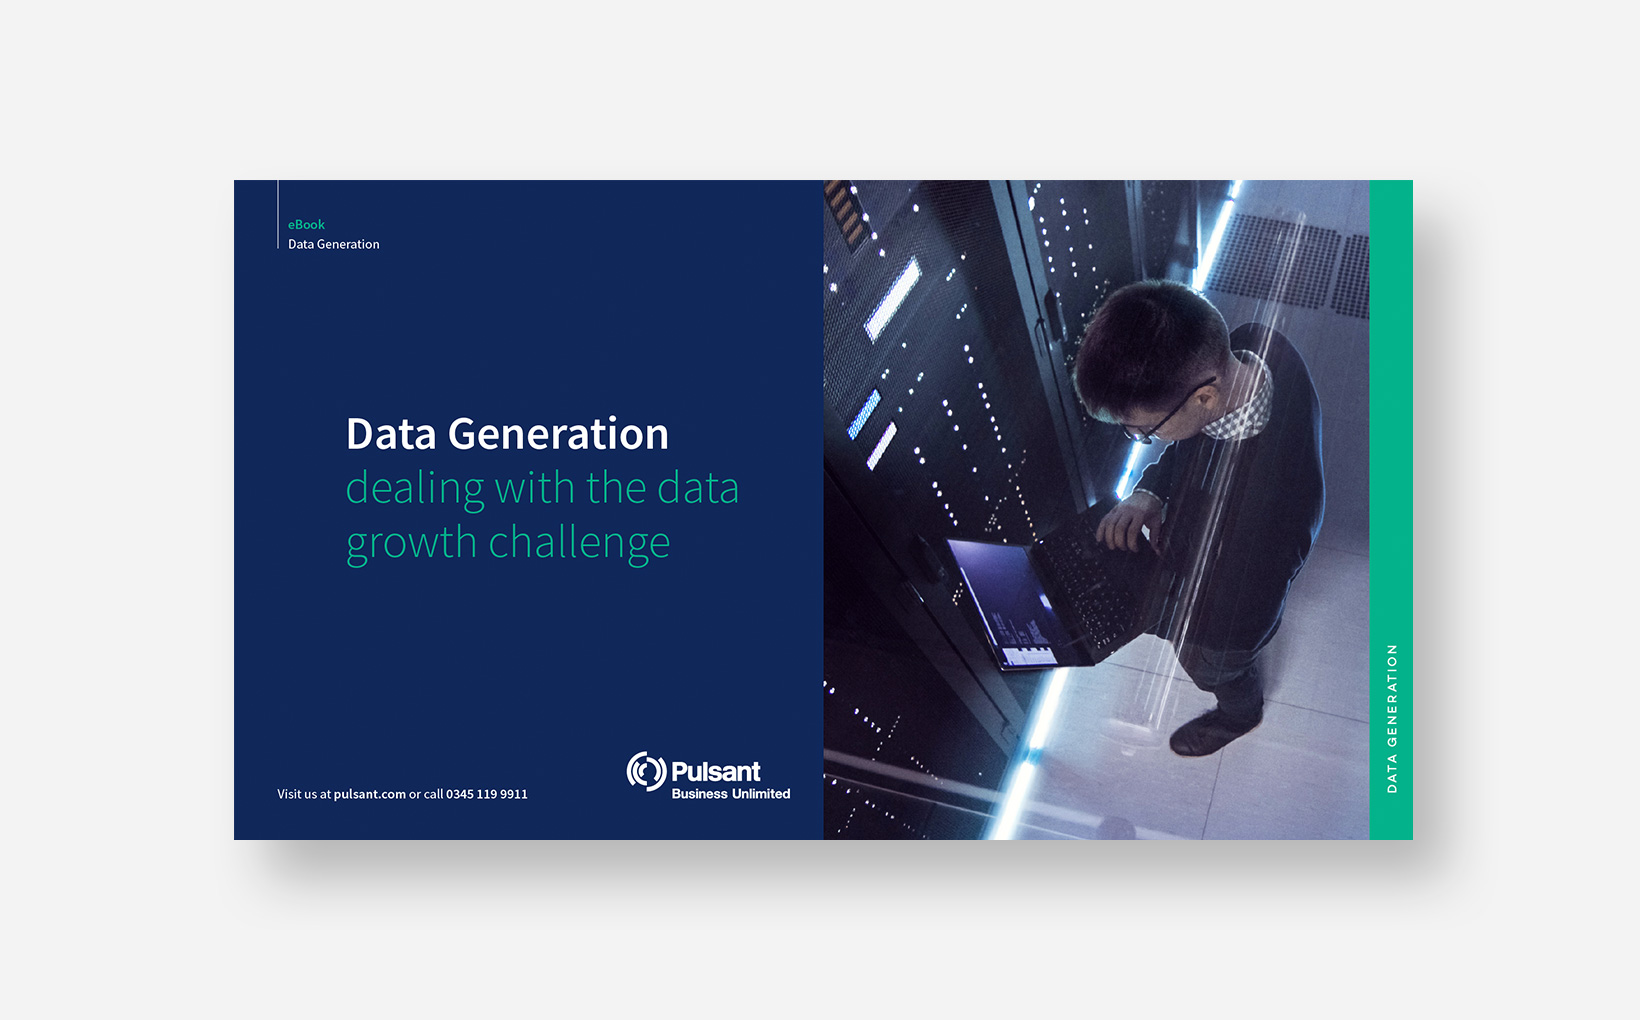 Data Generation — dealing with the data growth challenge